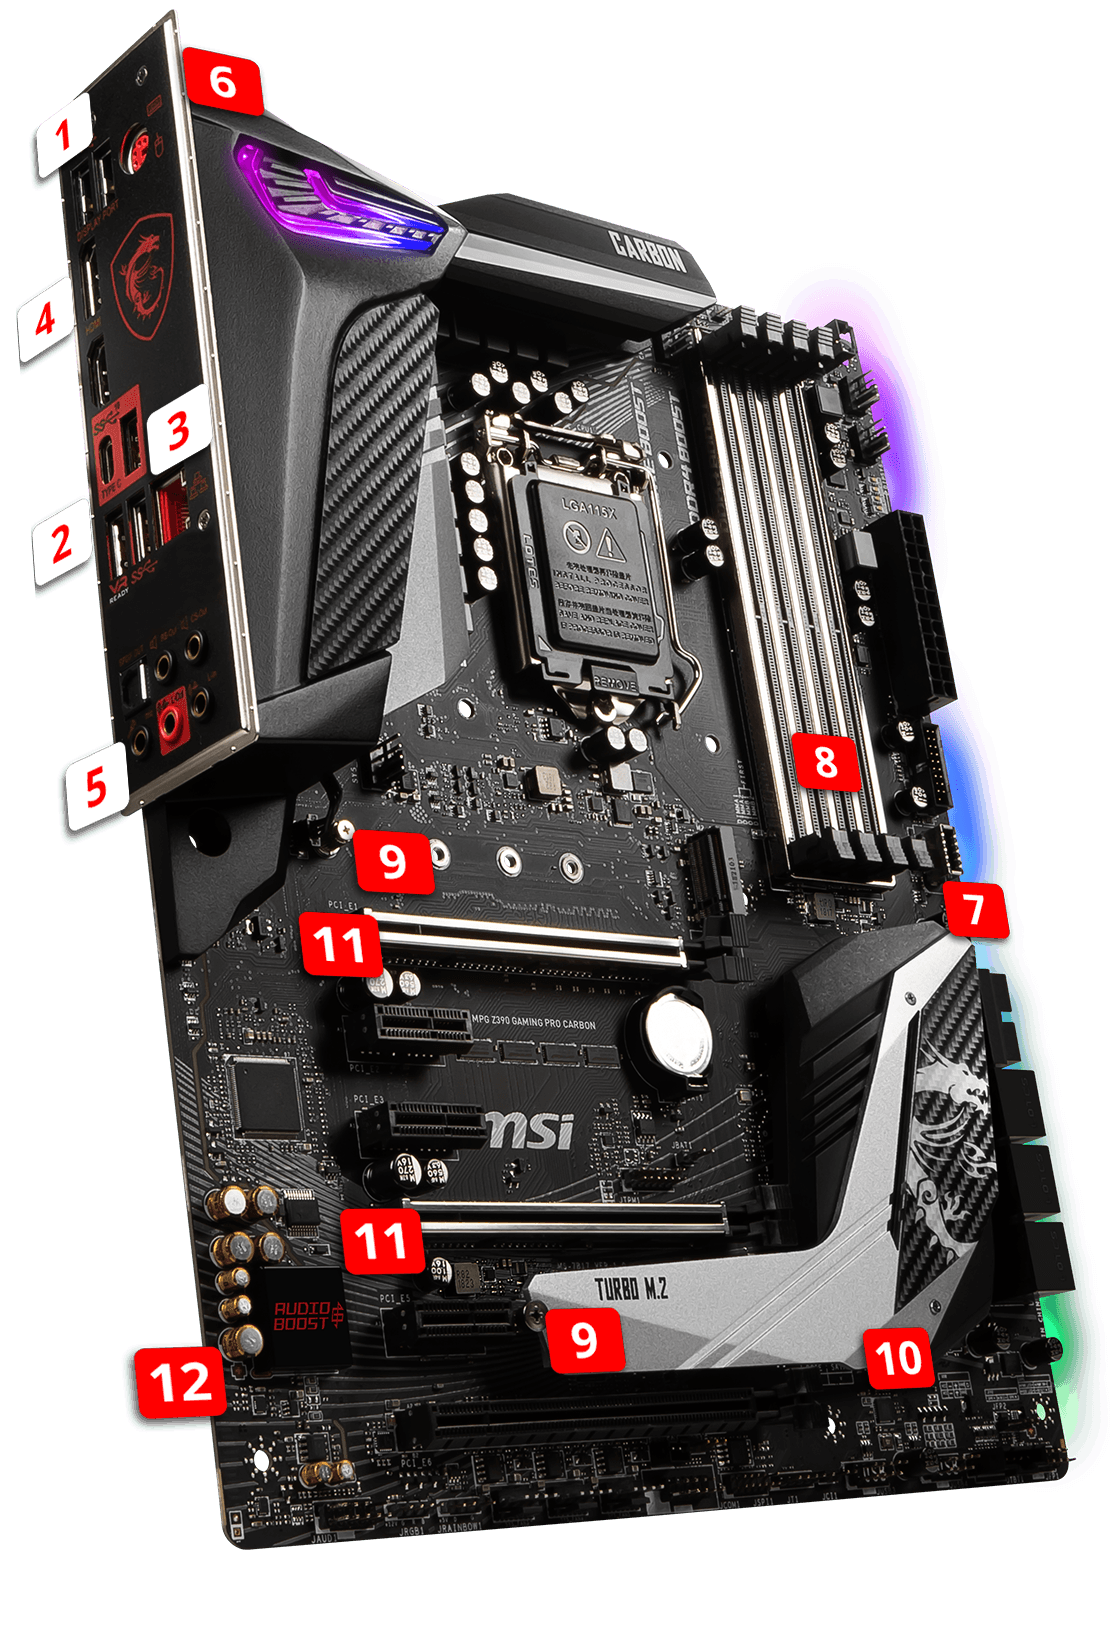 MSI MPG Z390 GAMING PRO CARBON overview